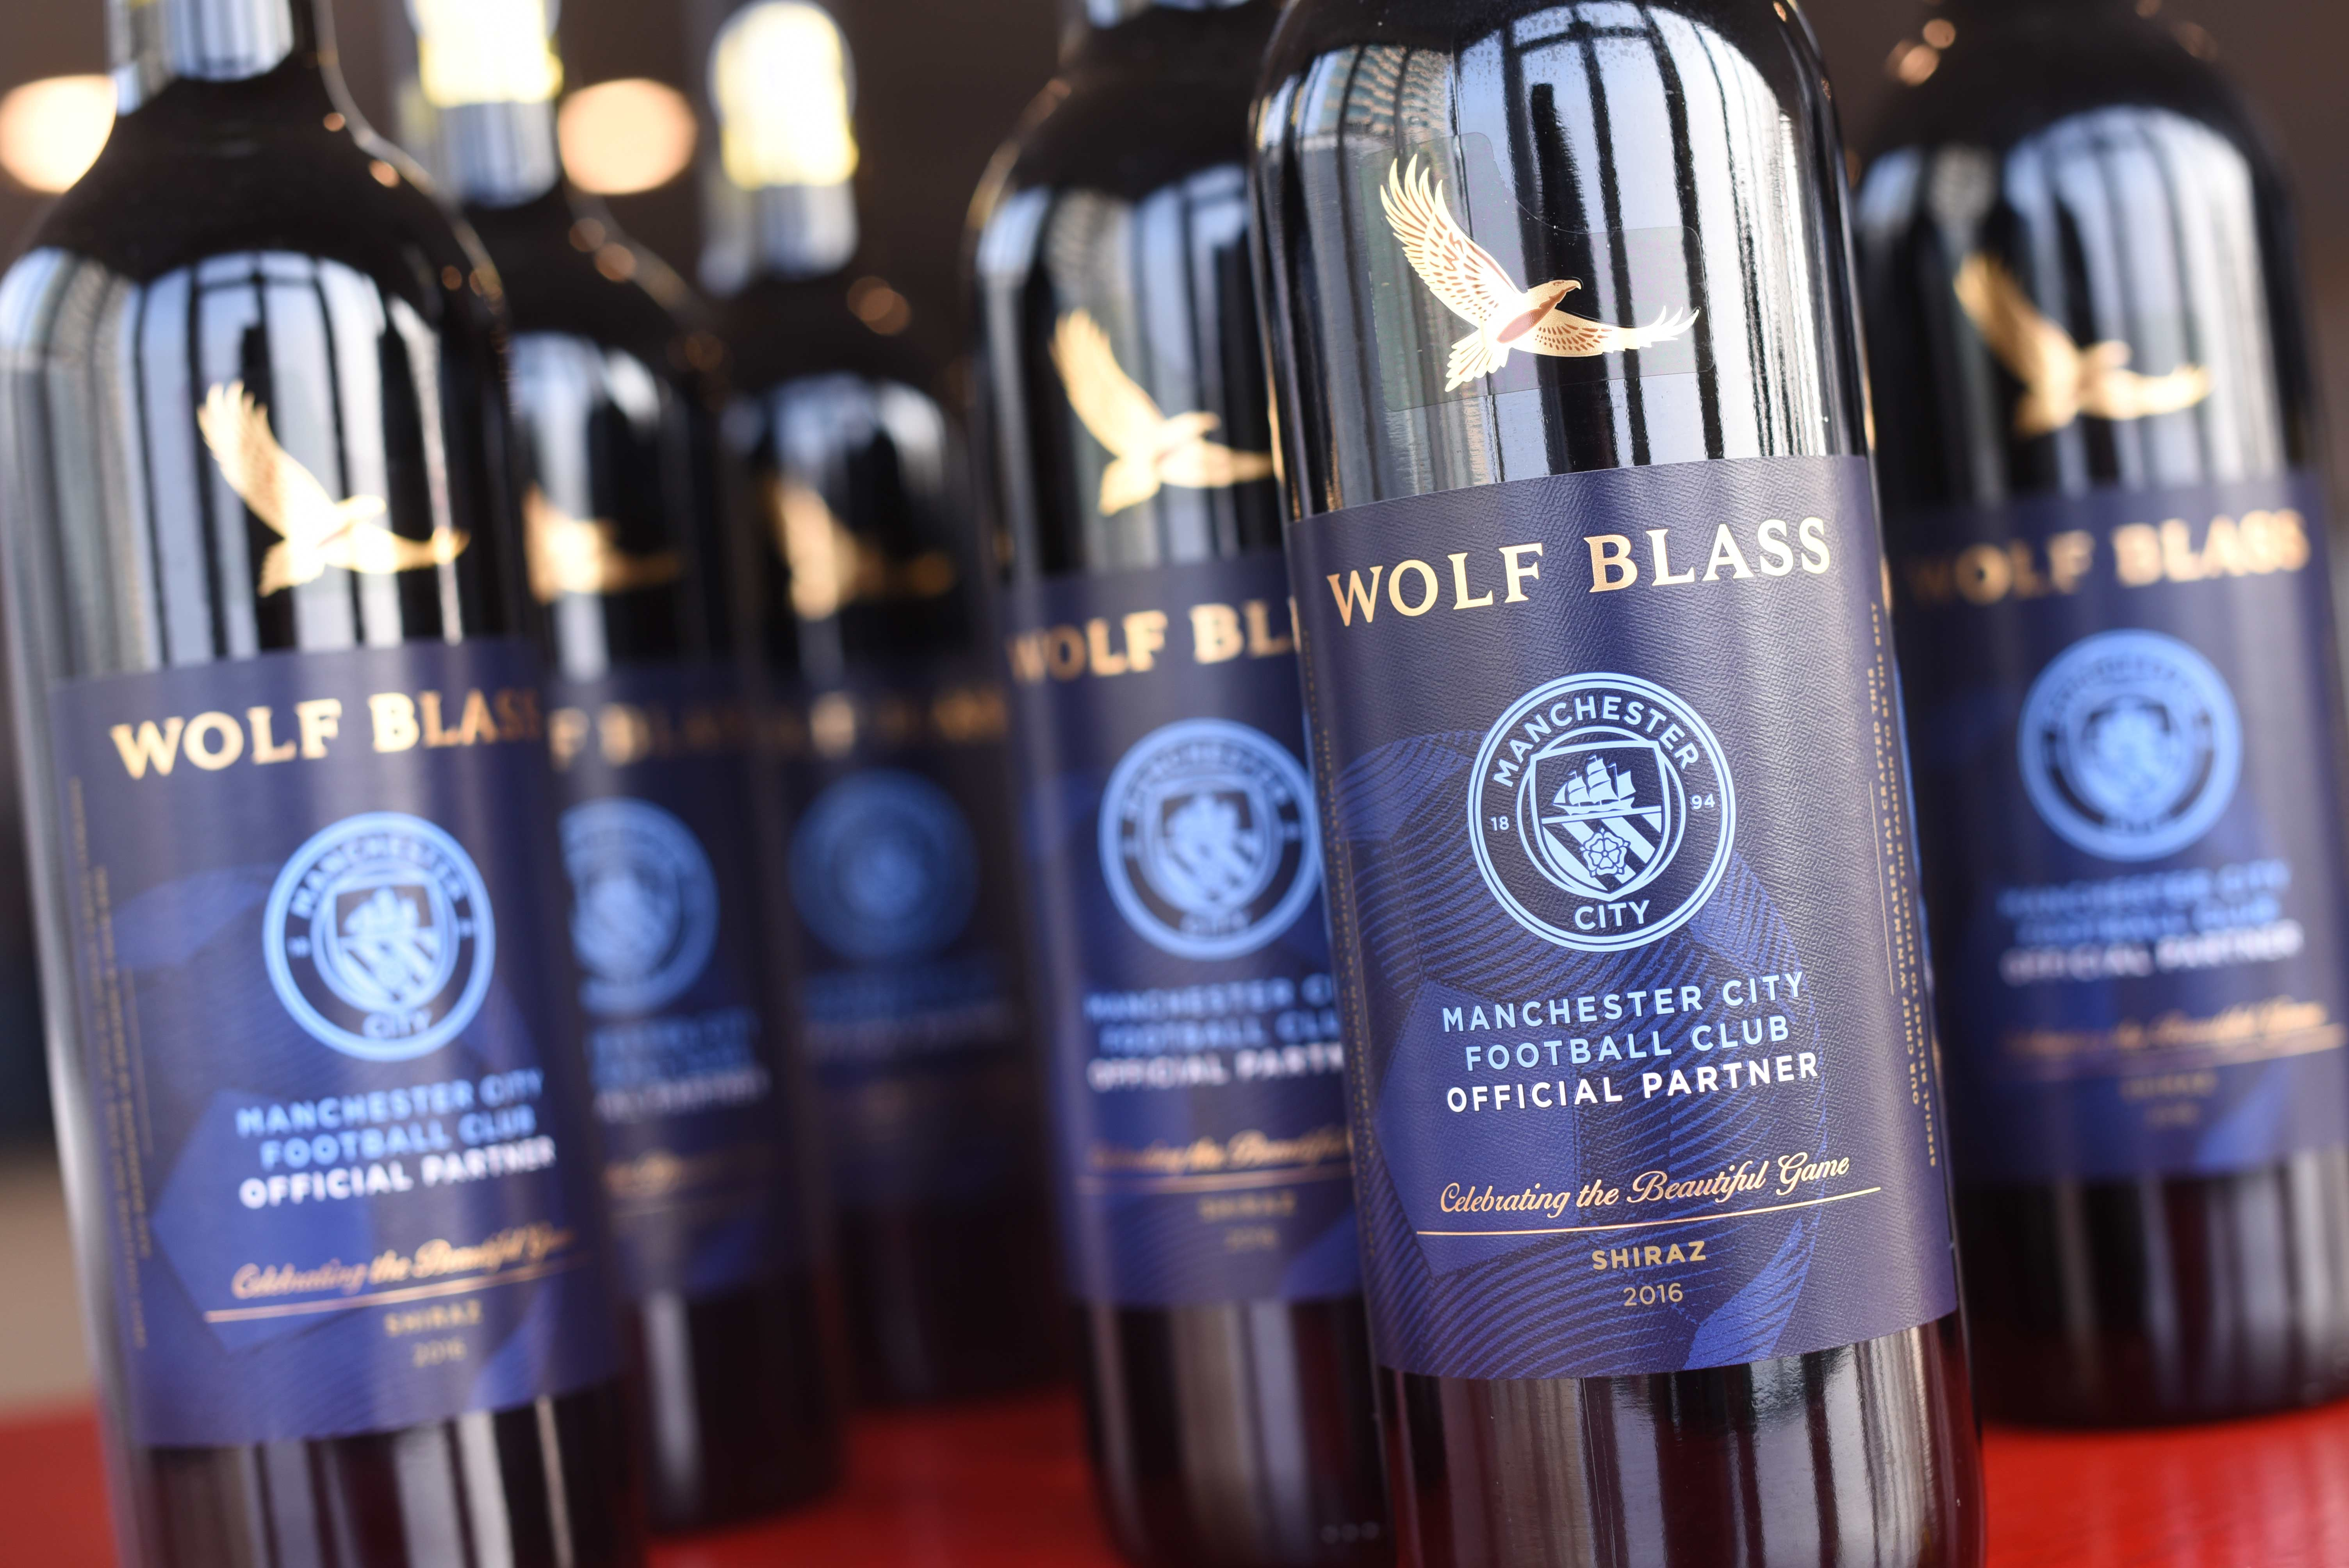 Manchester City Wolf Blass wine match day pack